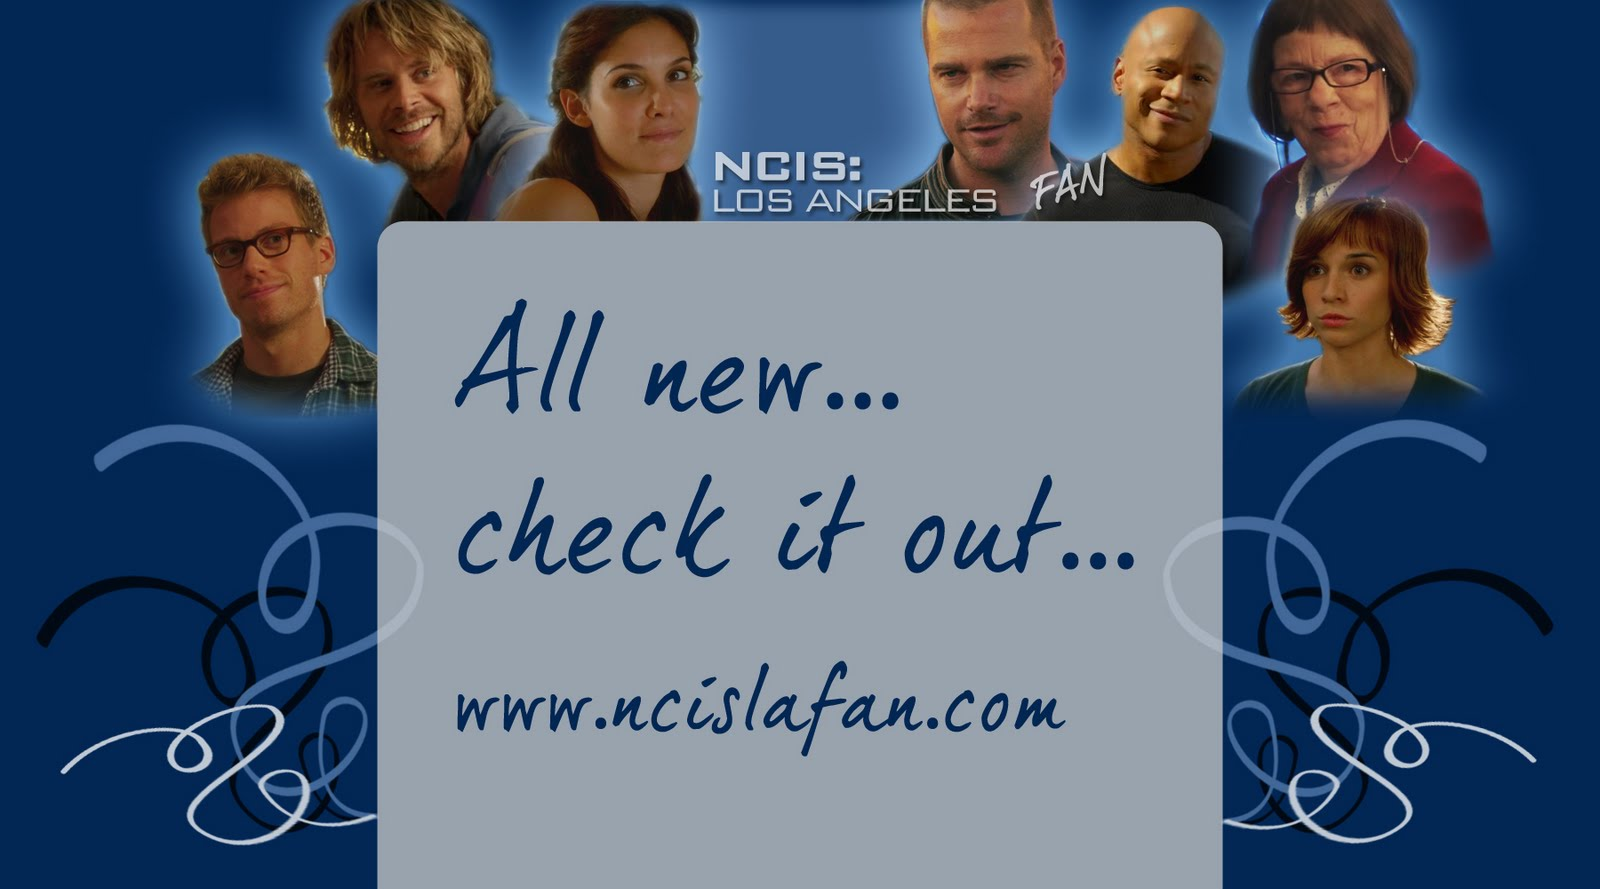 All new check out wwwncislafancom ncis los angeles cast and crew